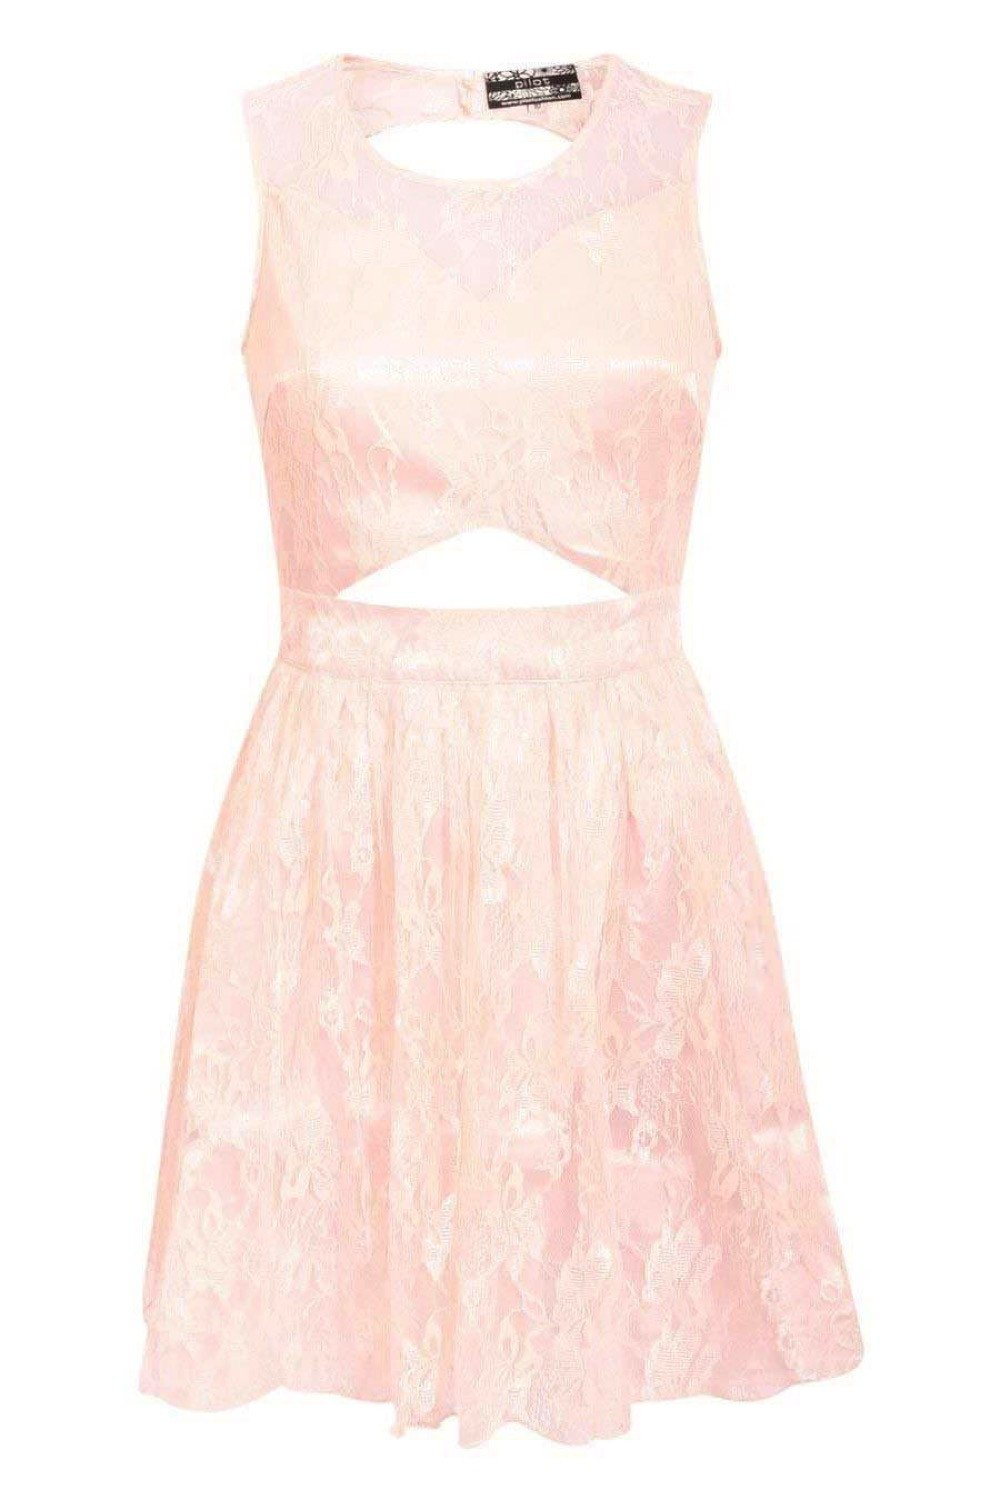 Lace Cut Out Front Skater Dress in Pink FRONT